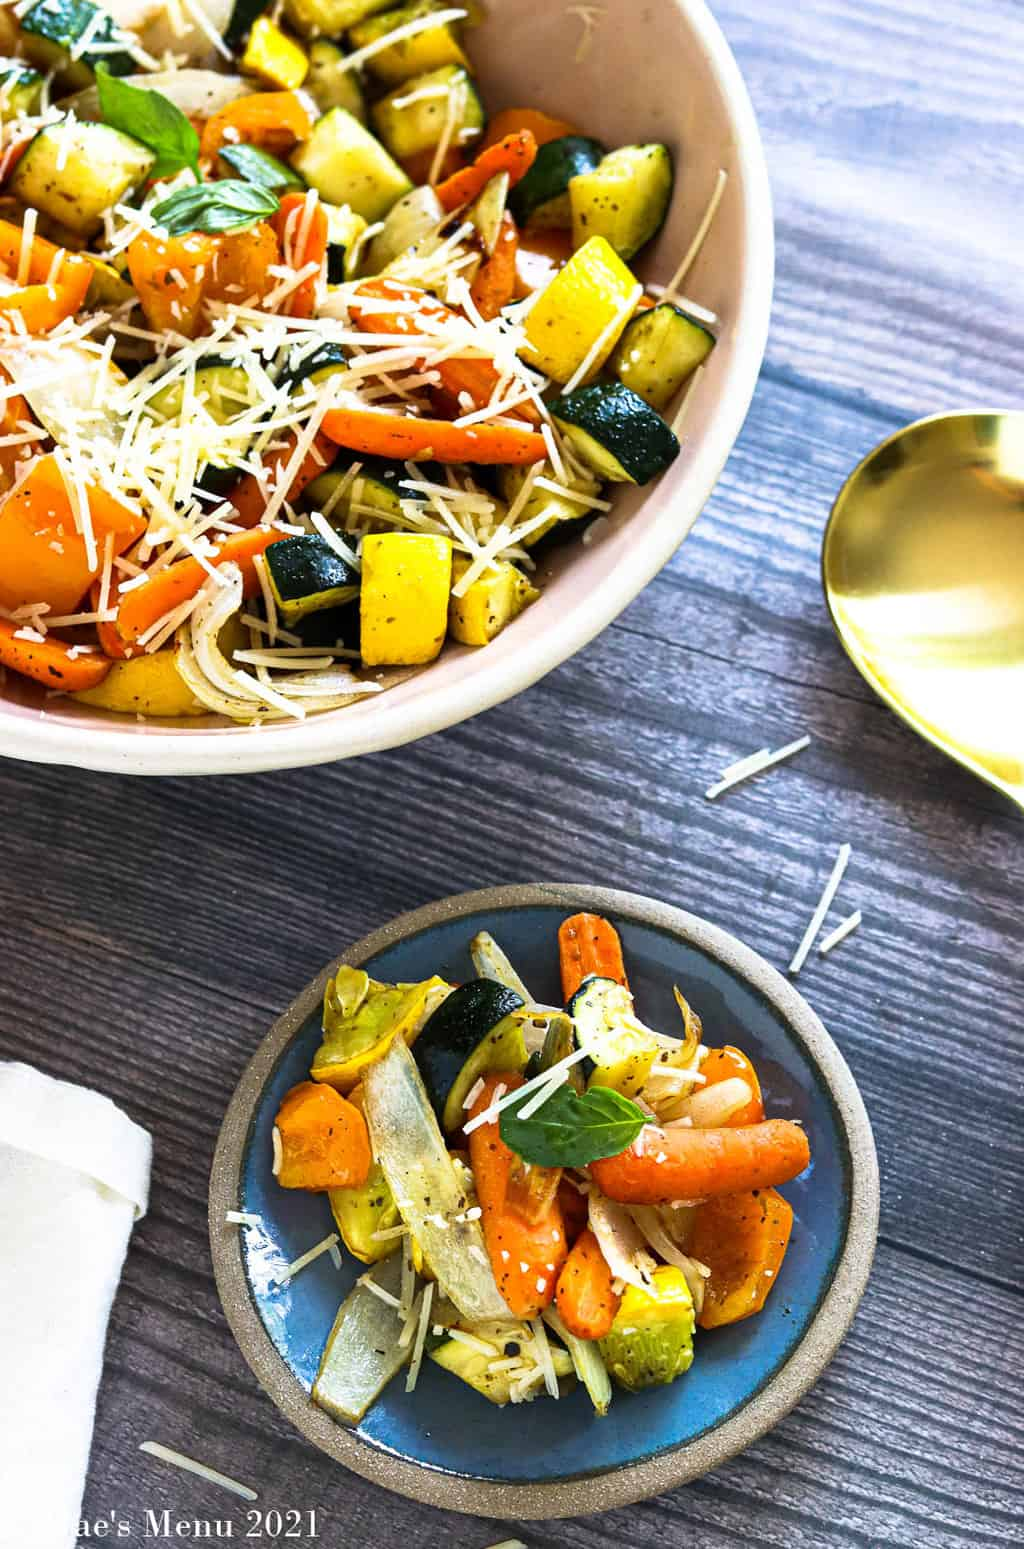 A small dish of air fryer veggies next to a large serving bow of them